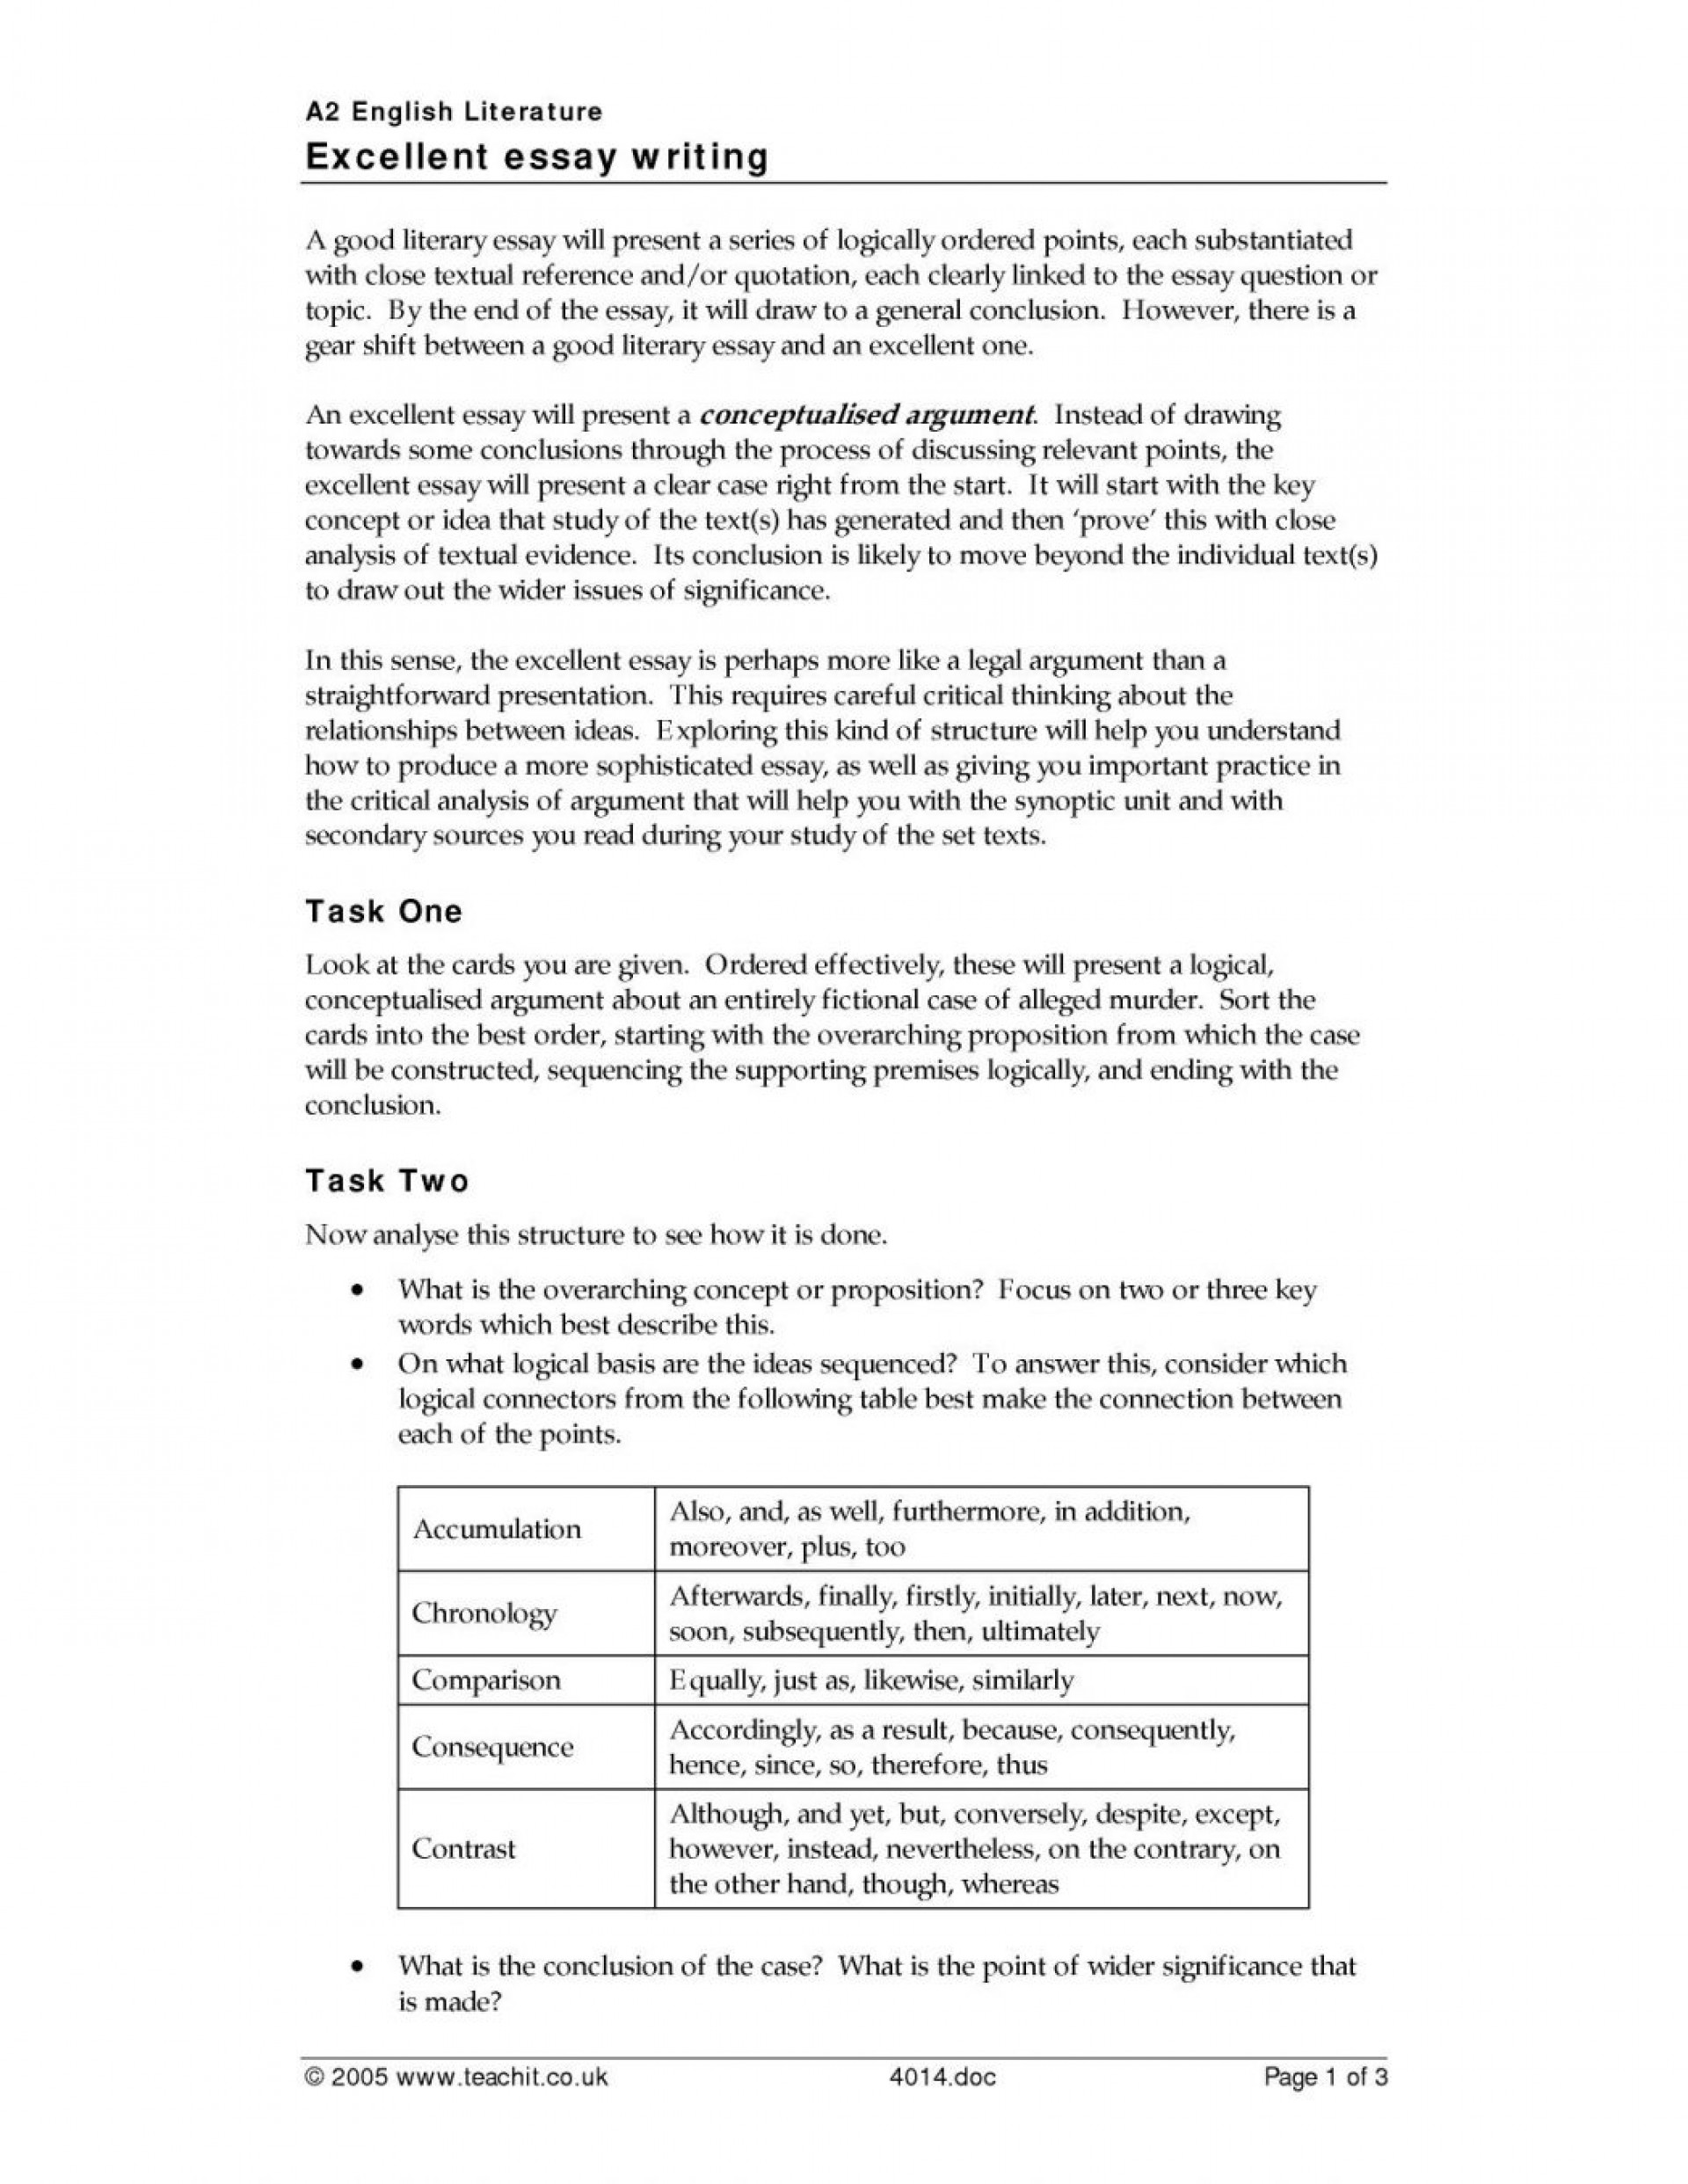 write a thesis statement for your critical lens essay brainly   help  hd image of write a thesis statement for your critical lens essay brainly ap